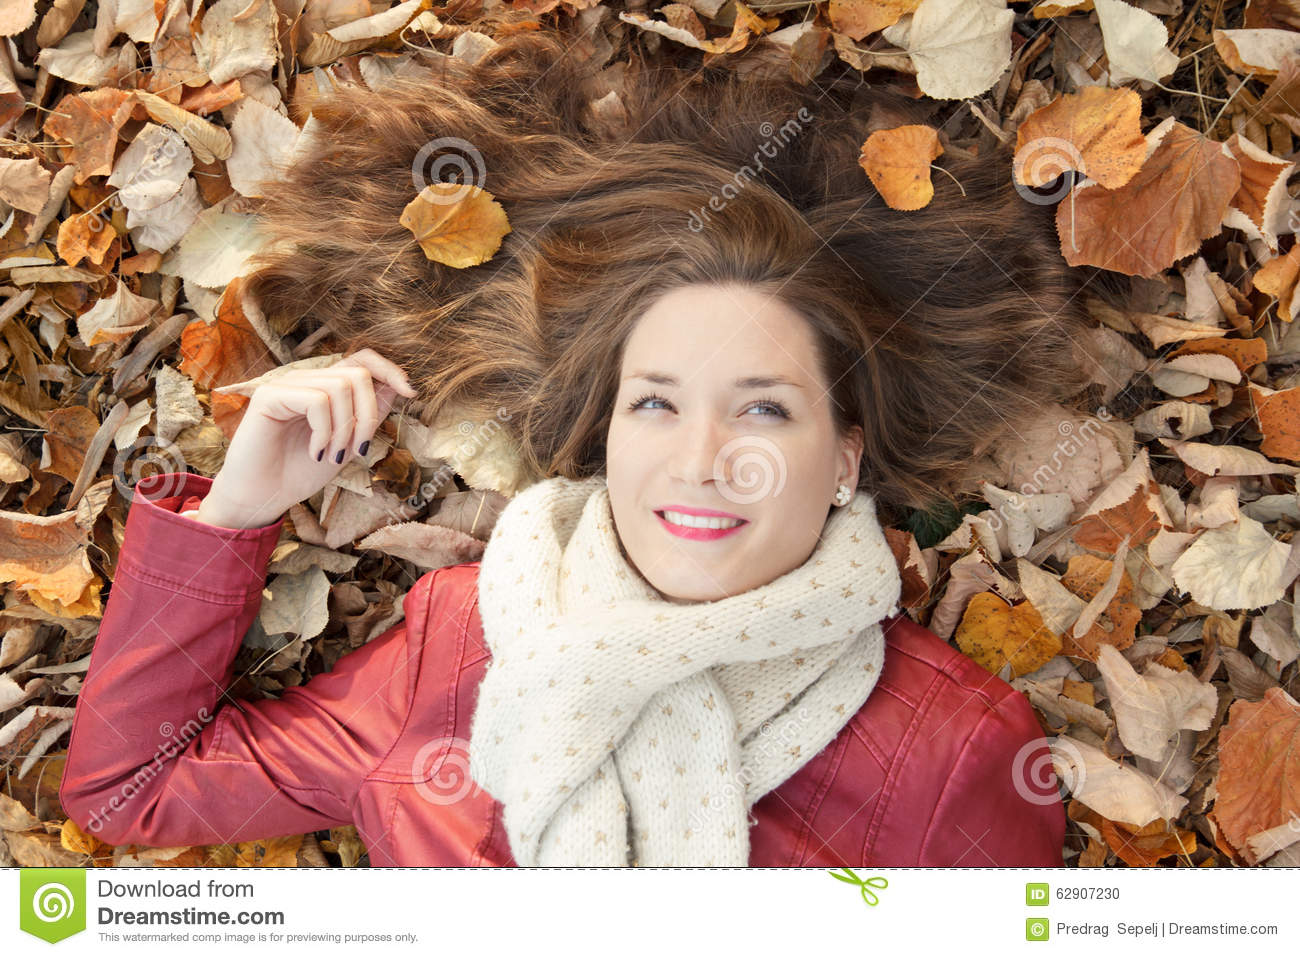 Young woman portrait lying on leaves, top view